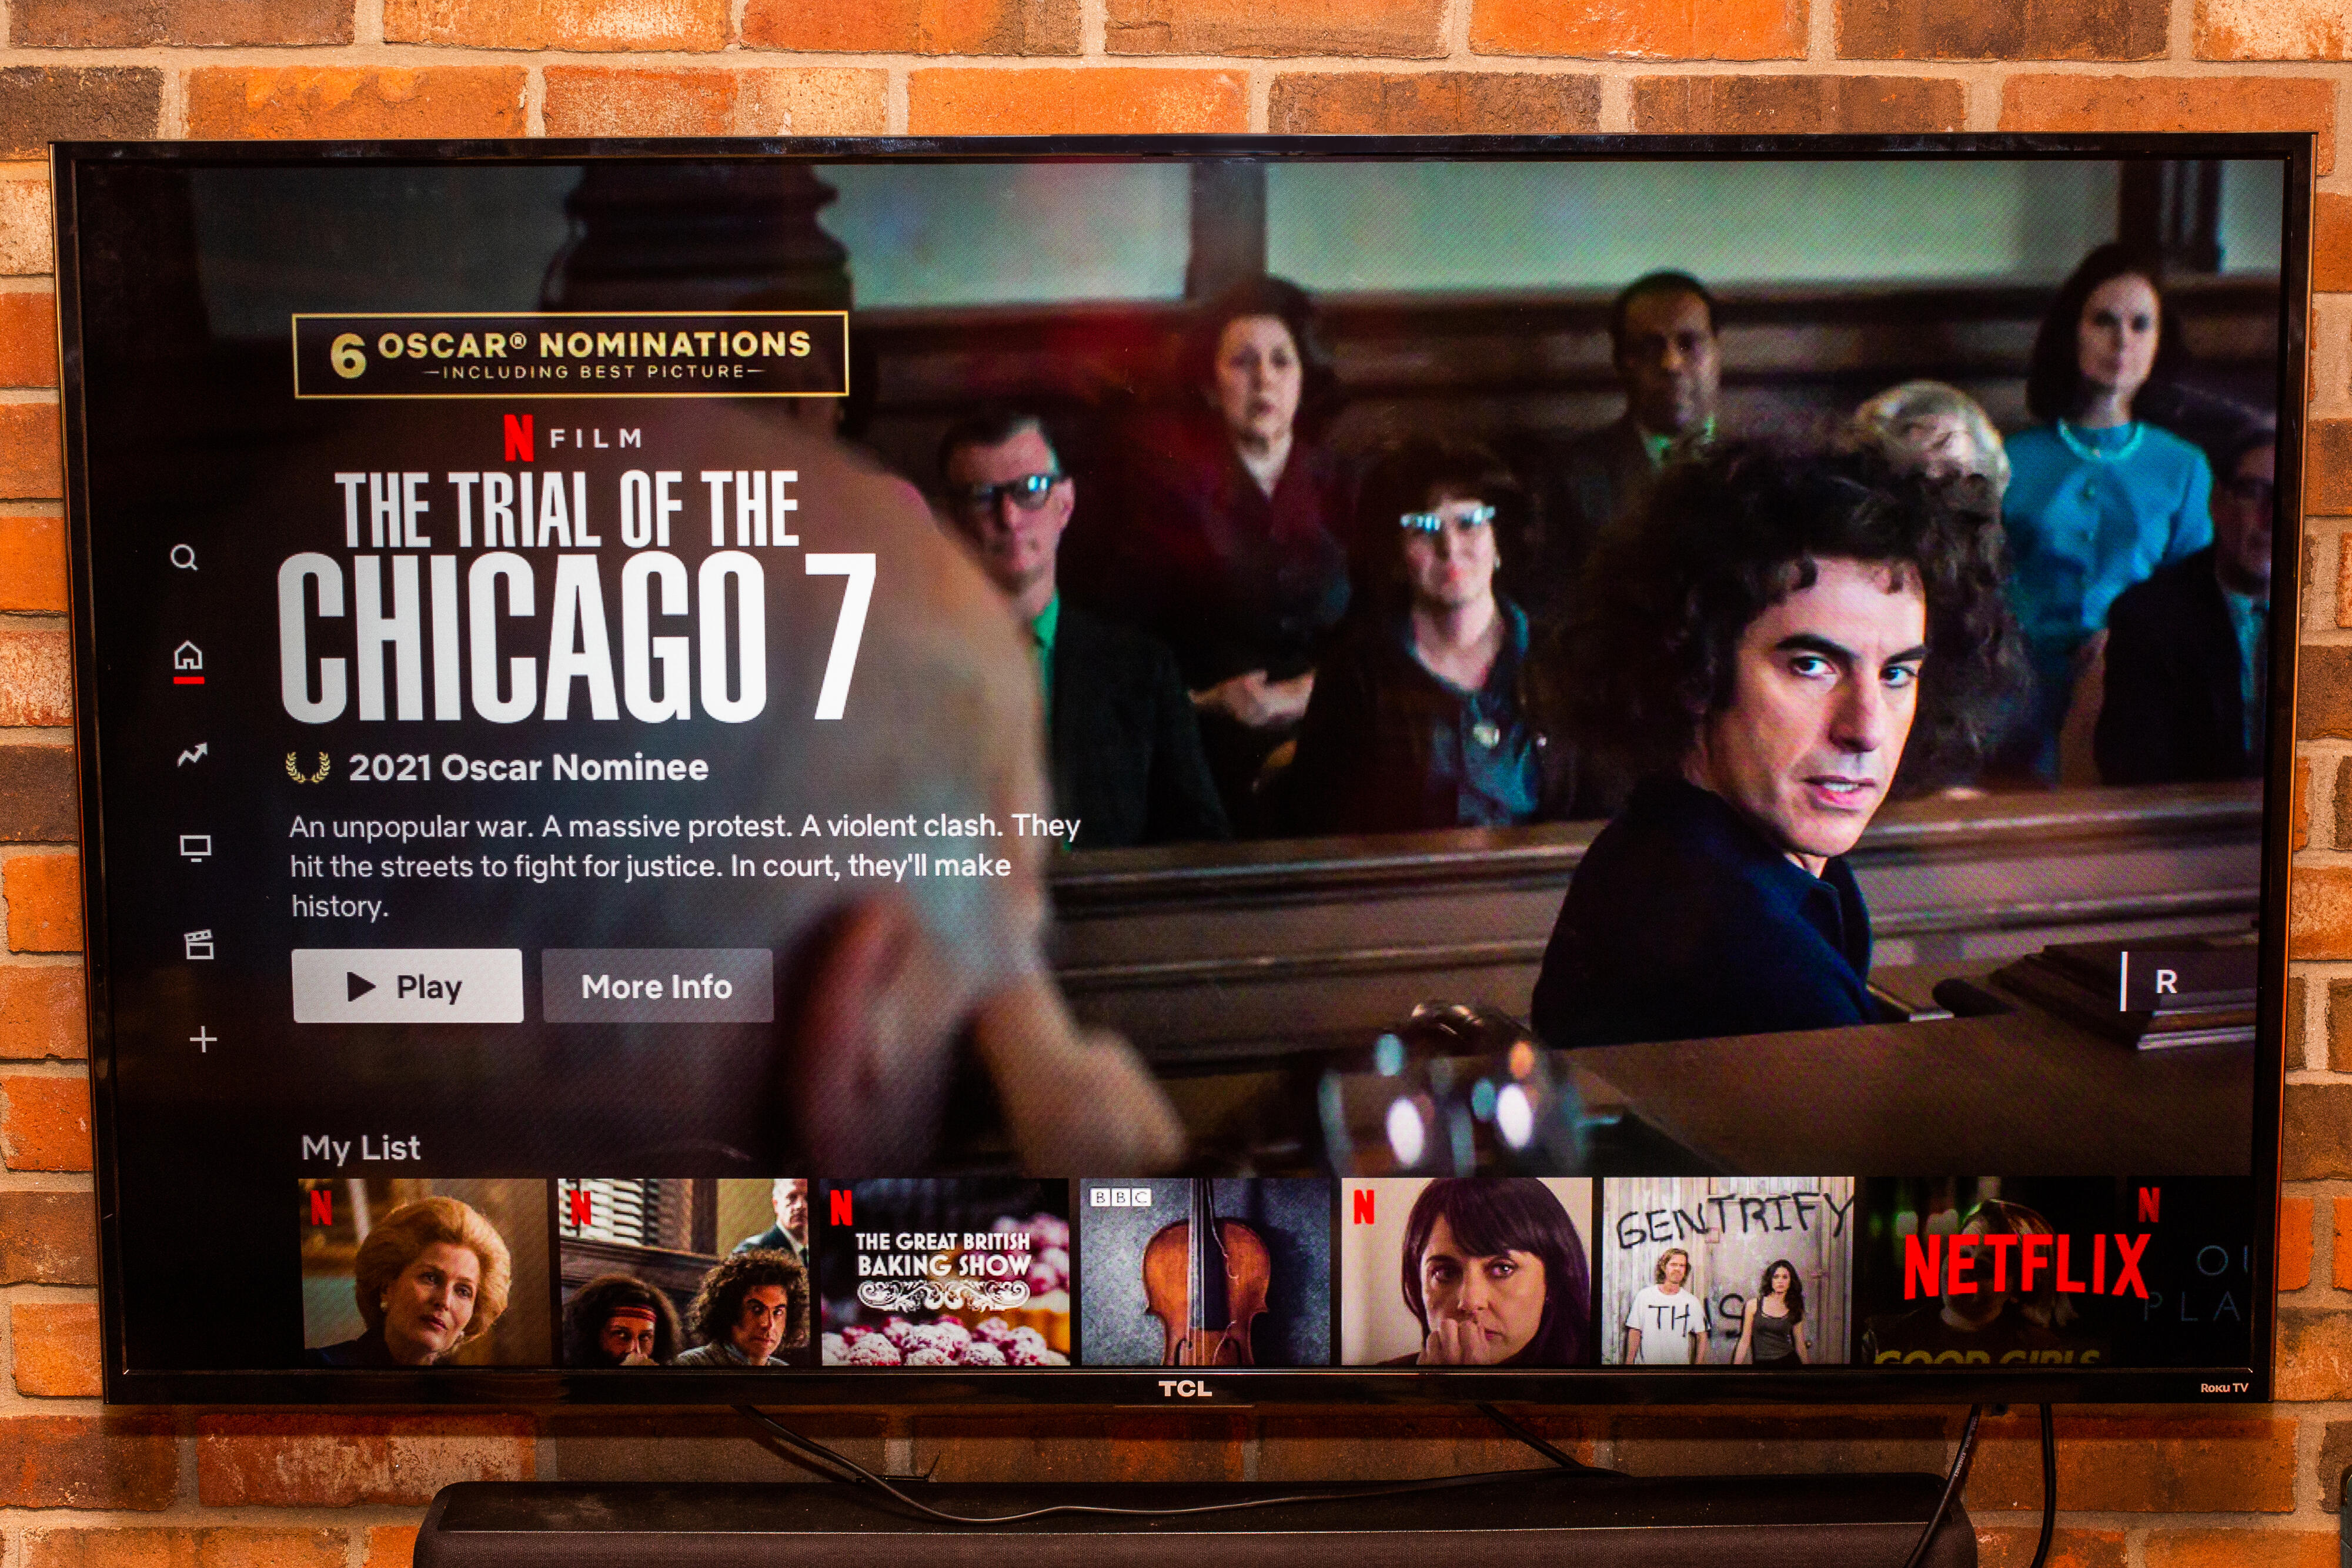 001-how-to-watch-netflix-on-your-tv-2021